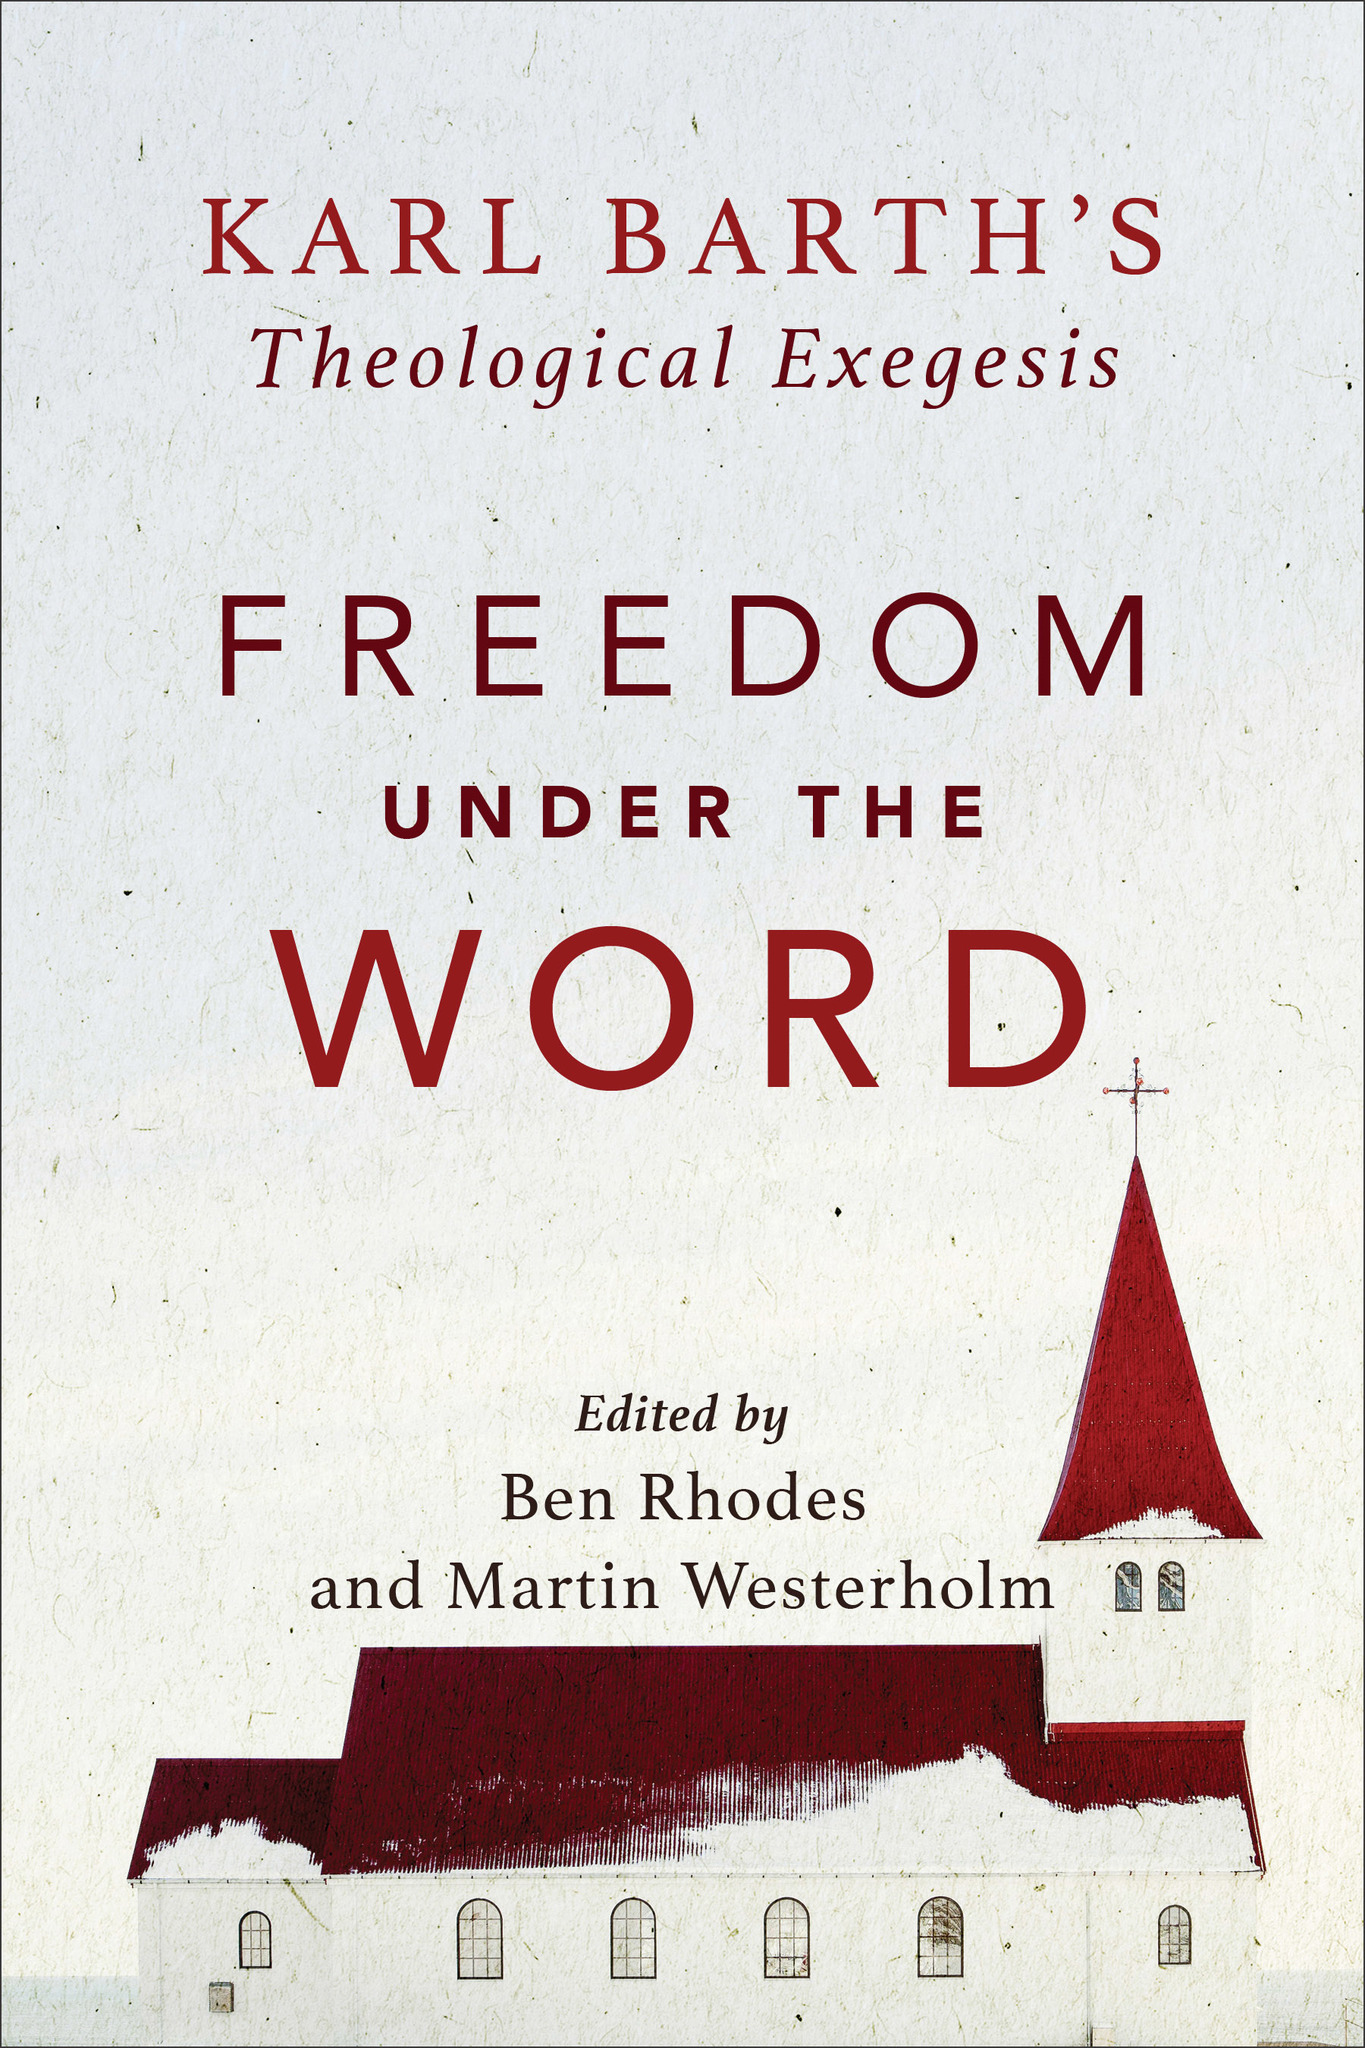 Cover image with text: Freedom Under the Word, Karl Barth's Theological Exegesis, Edited by Ben Rhodes and Martin Westerholm.